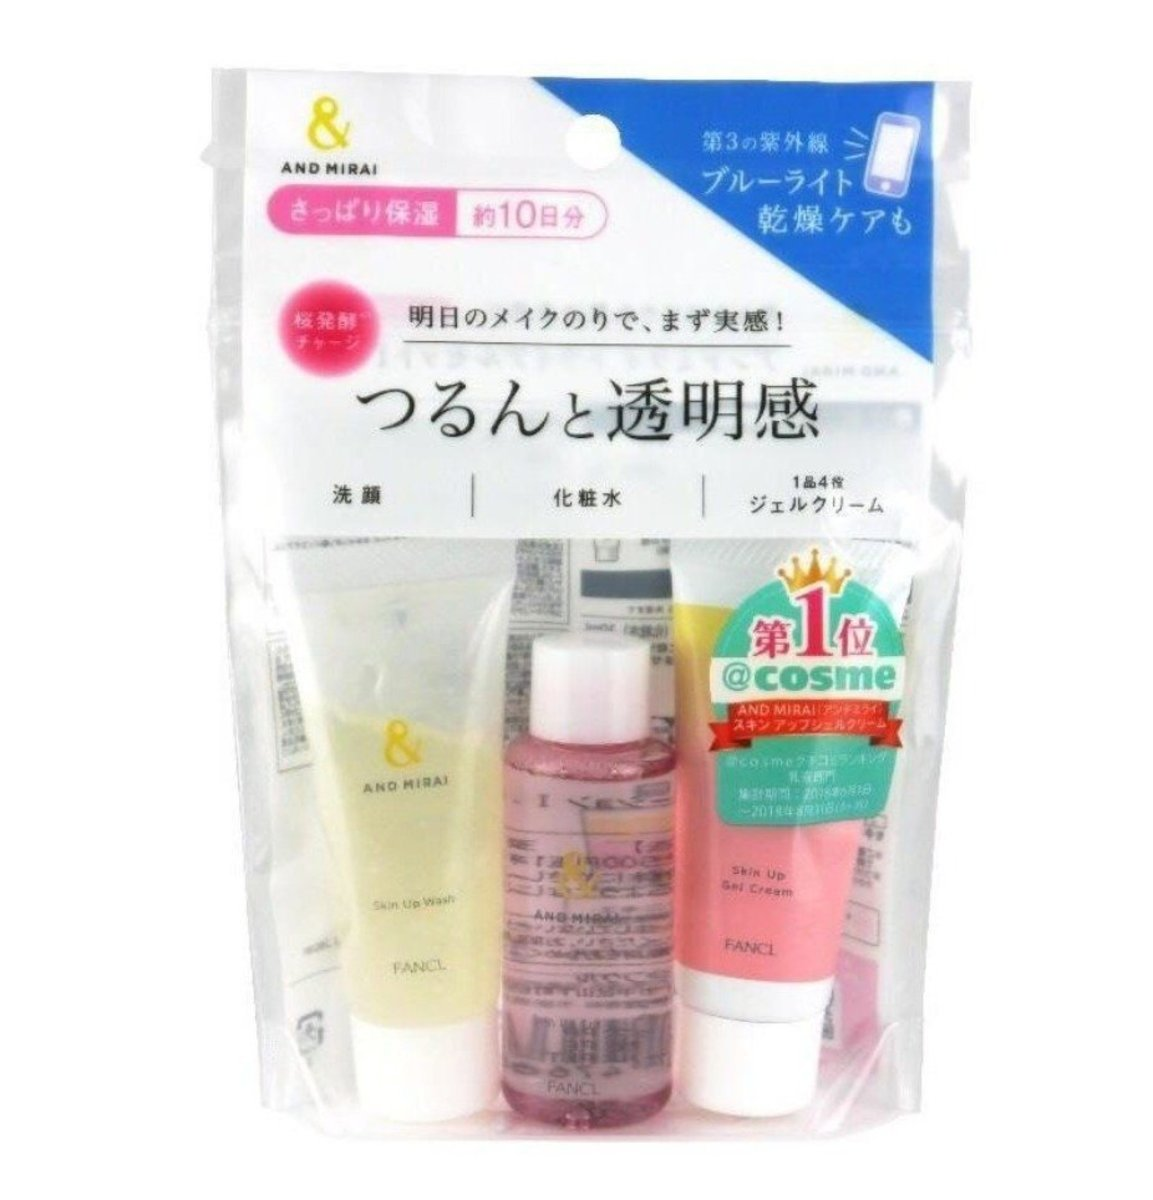 AND MIRAI Trial Travel Set (3pcs): Wash 20g + Lotion 30ml + Cream 15g